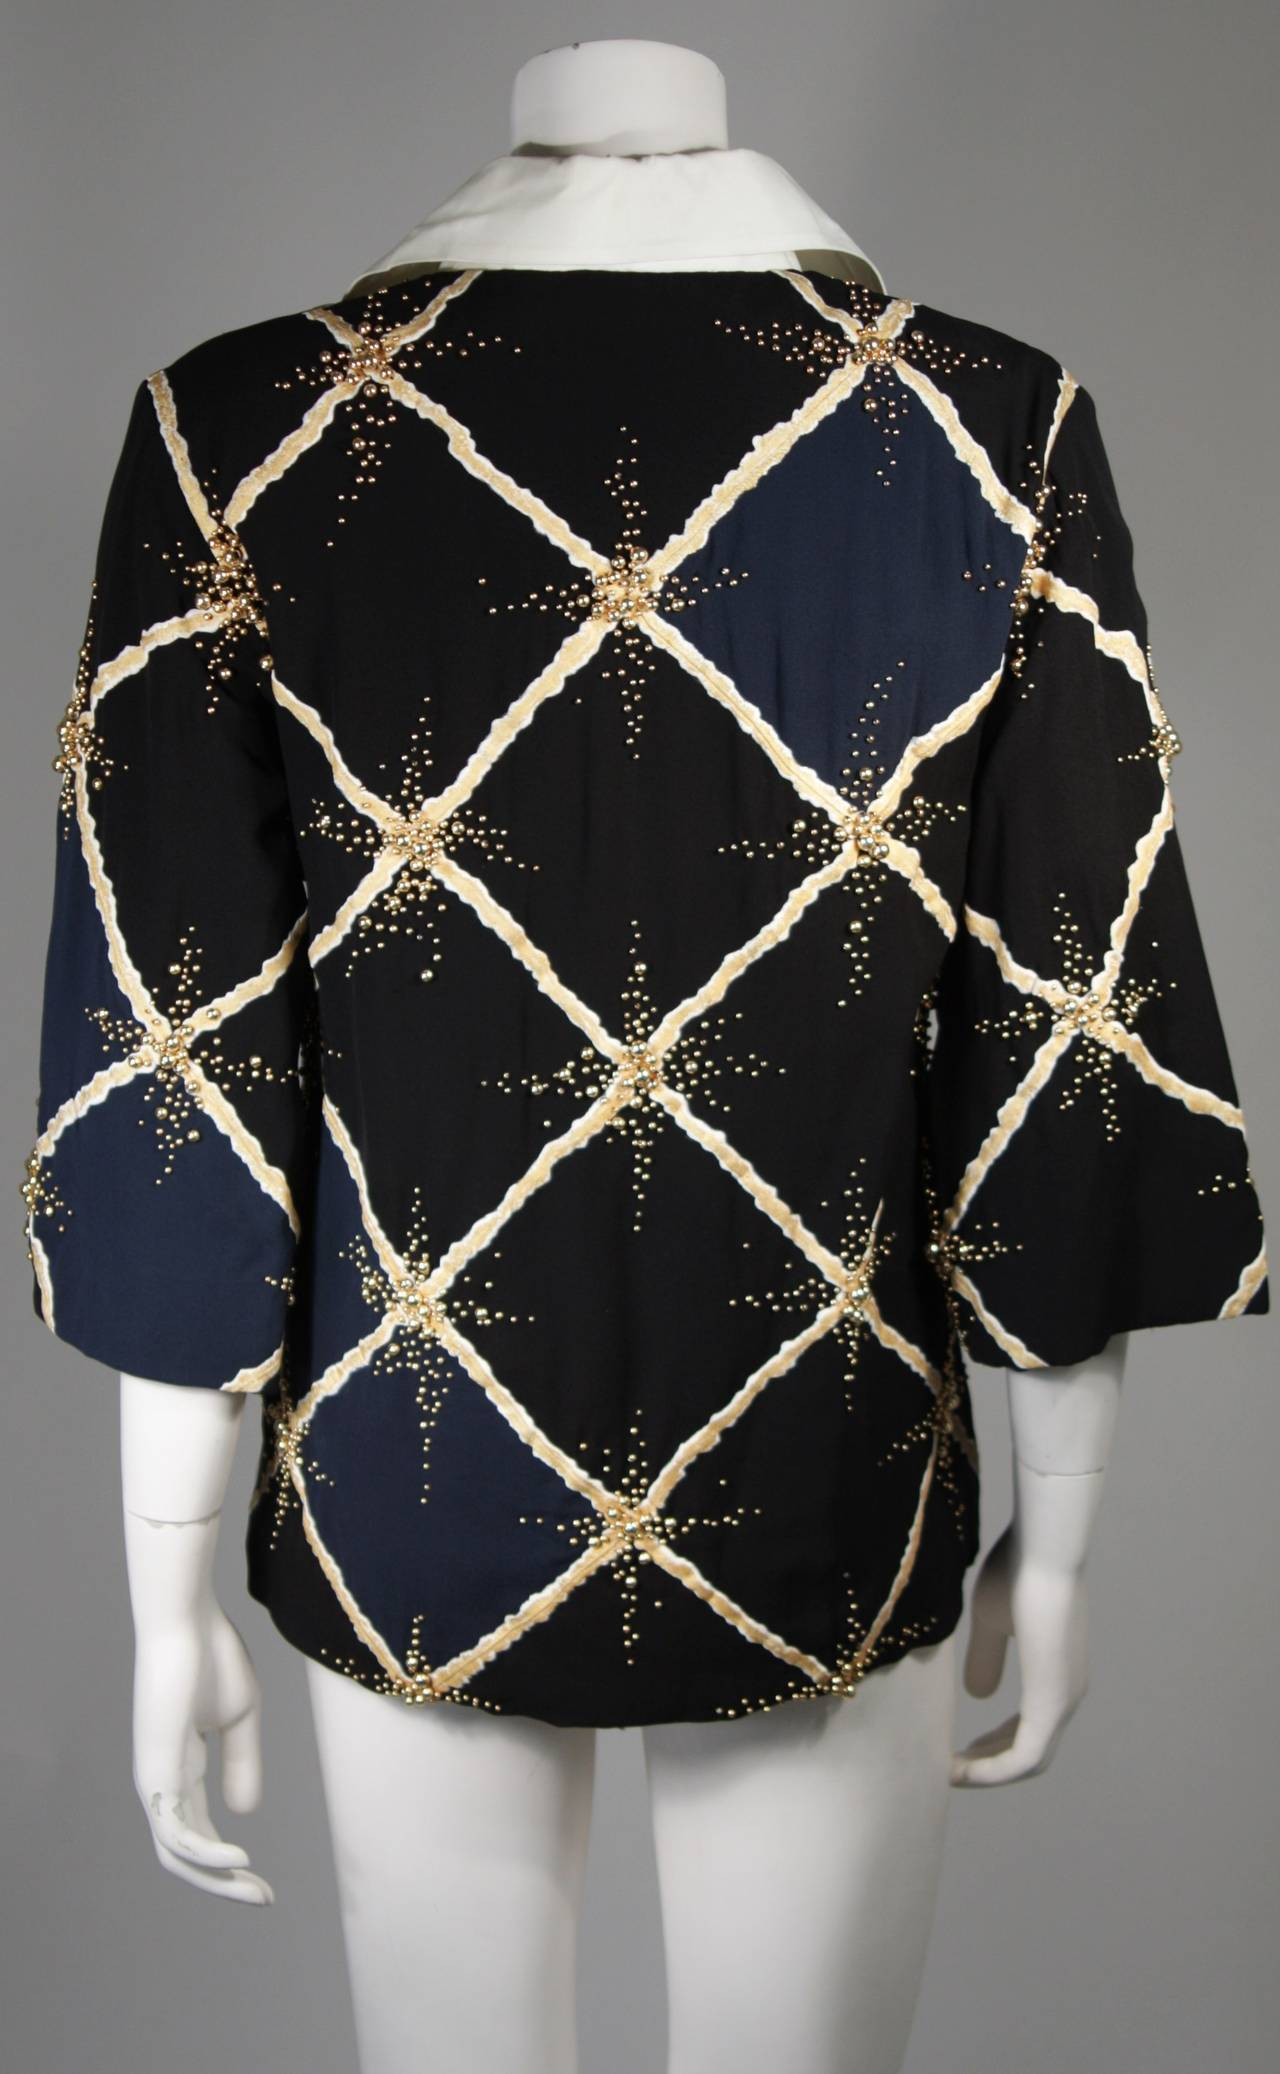 Pierre Balmain Couture Embellished Blouse with Exaggerated Collar  Size Small 8